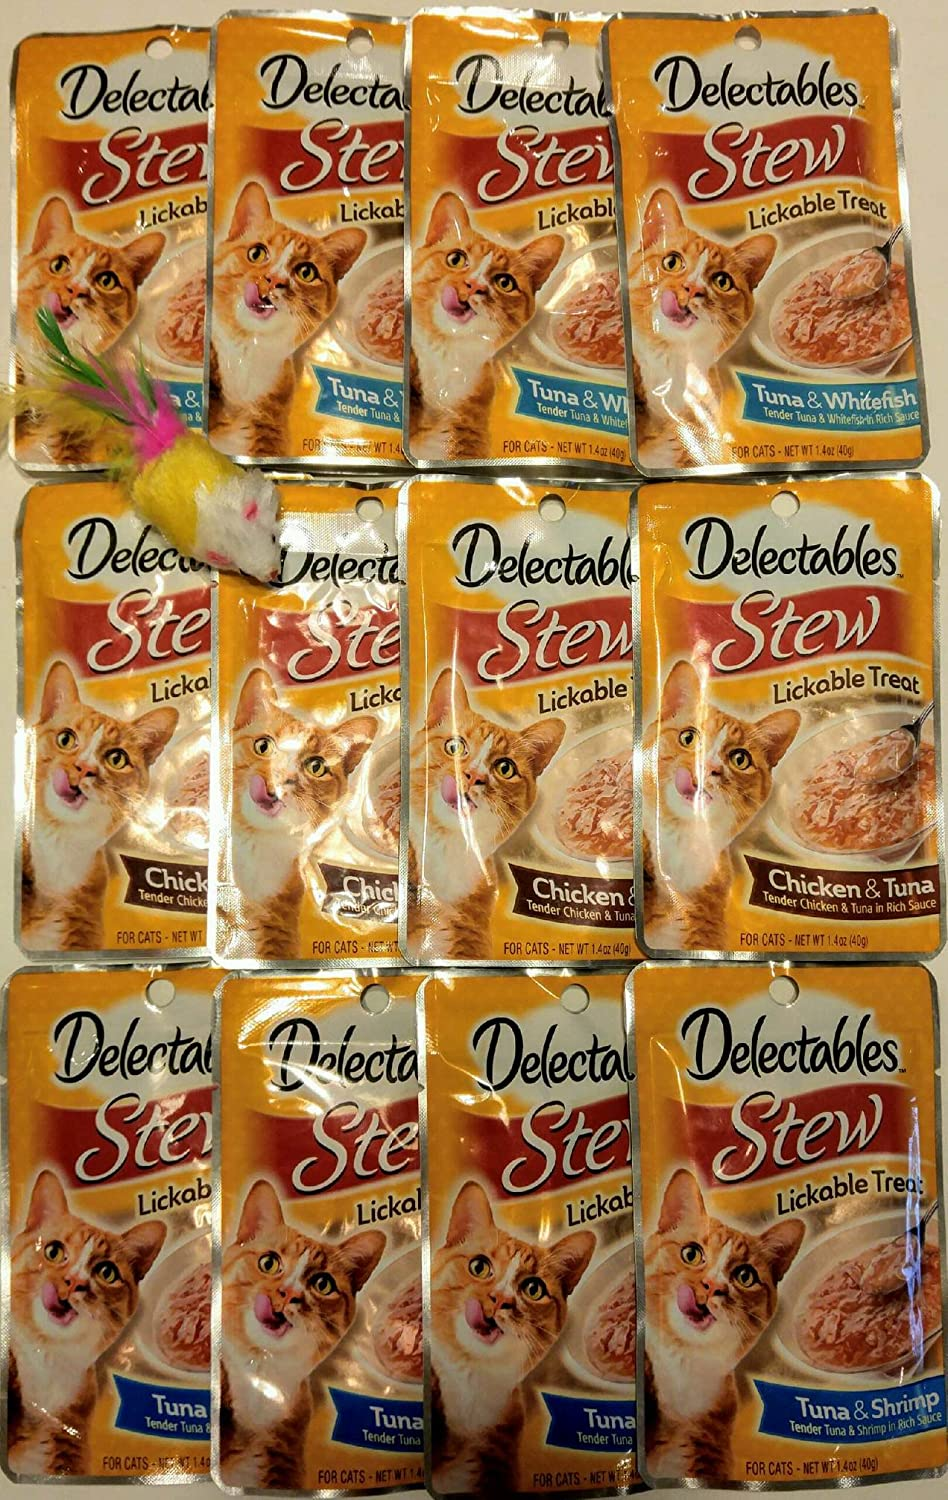 Delectables Stew Lickable Treats Variety Bundle Pack of 12. (4) Tuna & Whitefish, (4) Chicken & Tuna, (4) Tuna & Shrimp. 1.4 oz Each - Bonus Mouse Toy Included (Color May Vary)